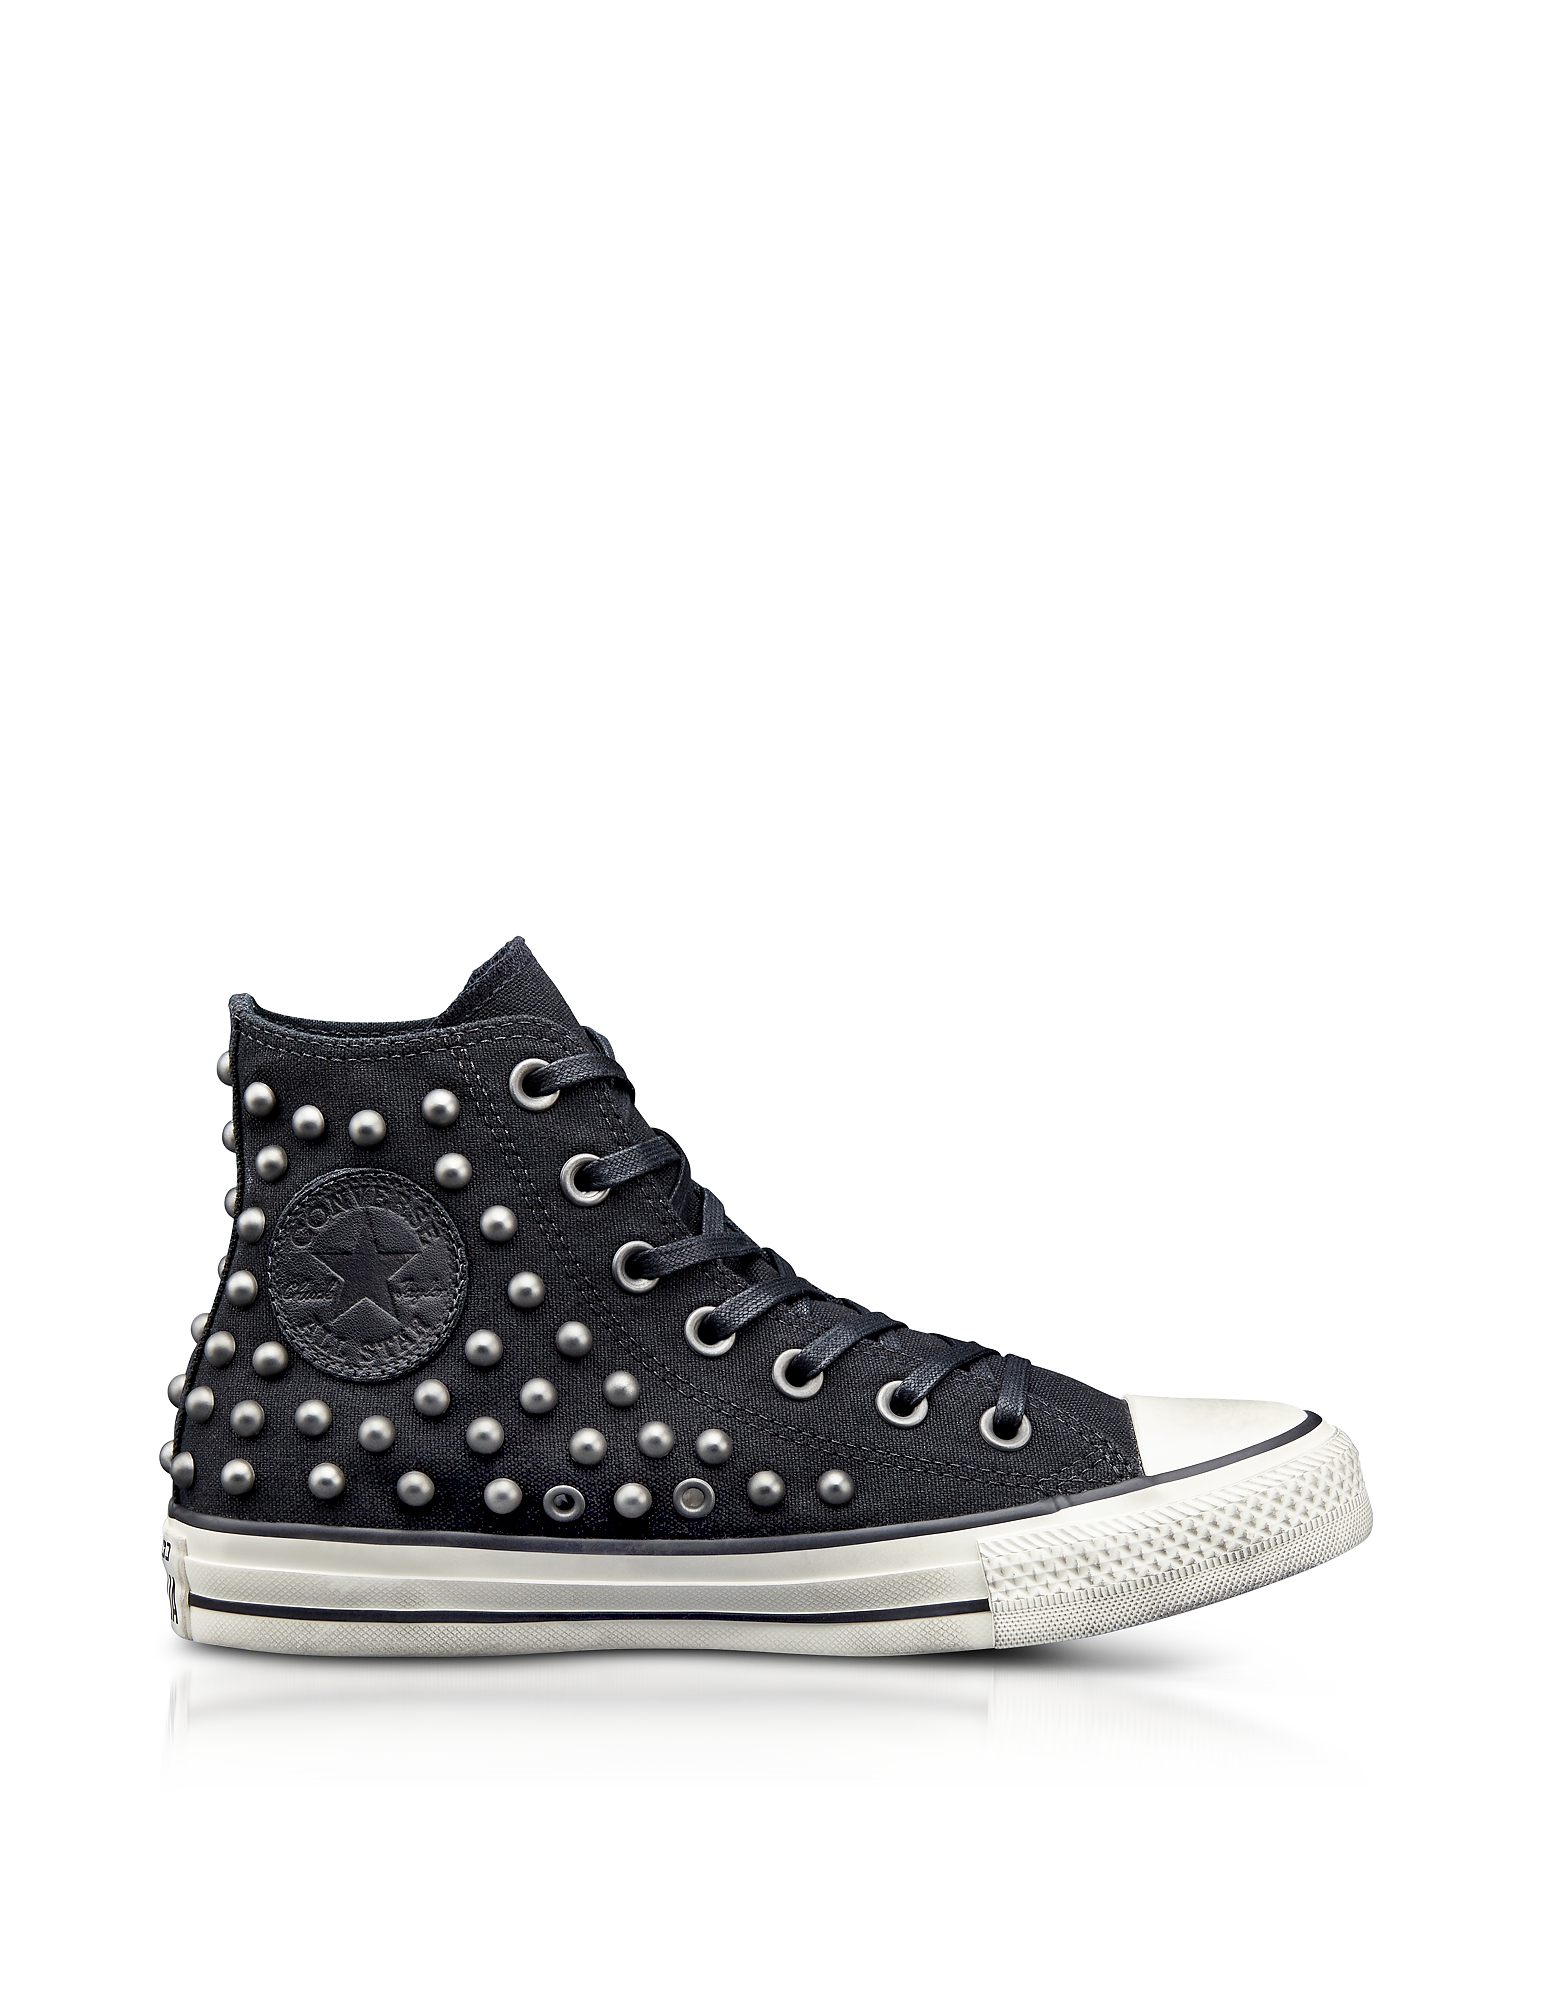 Converse Limited Edition Shoes, Chuck Taylor All Star High Black Studded Canvas Sneakers